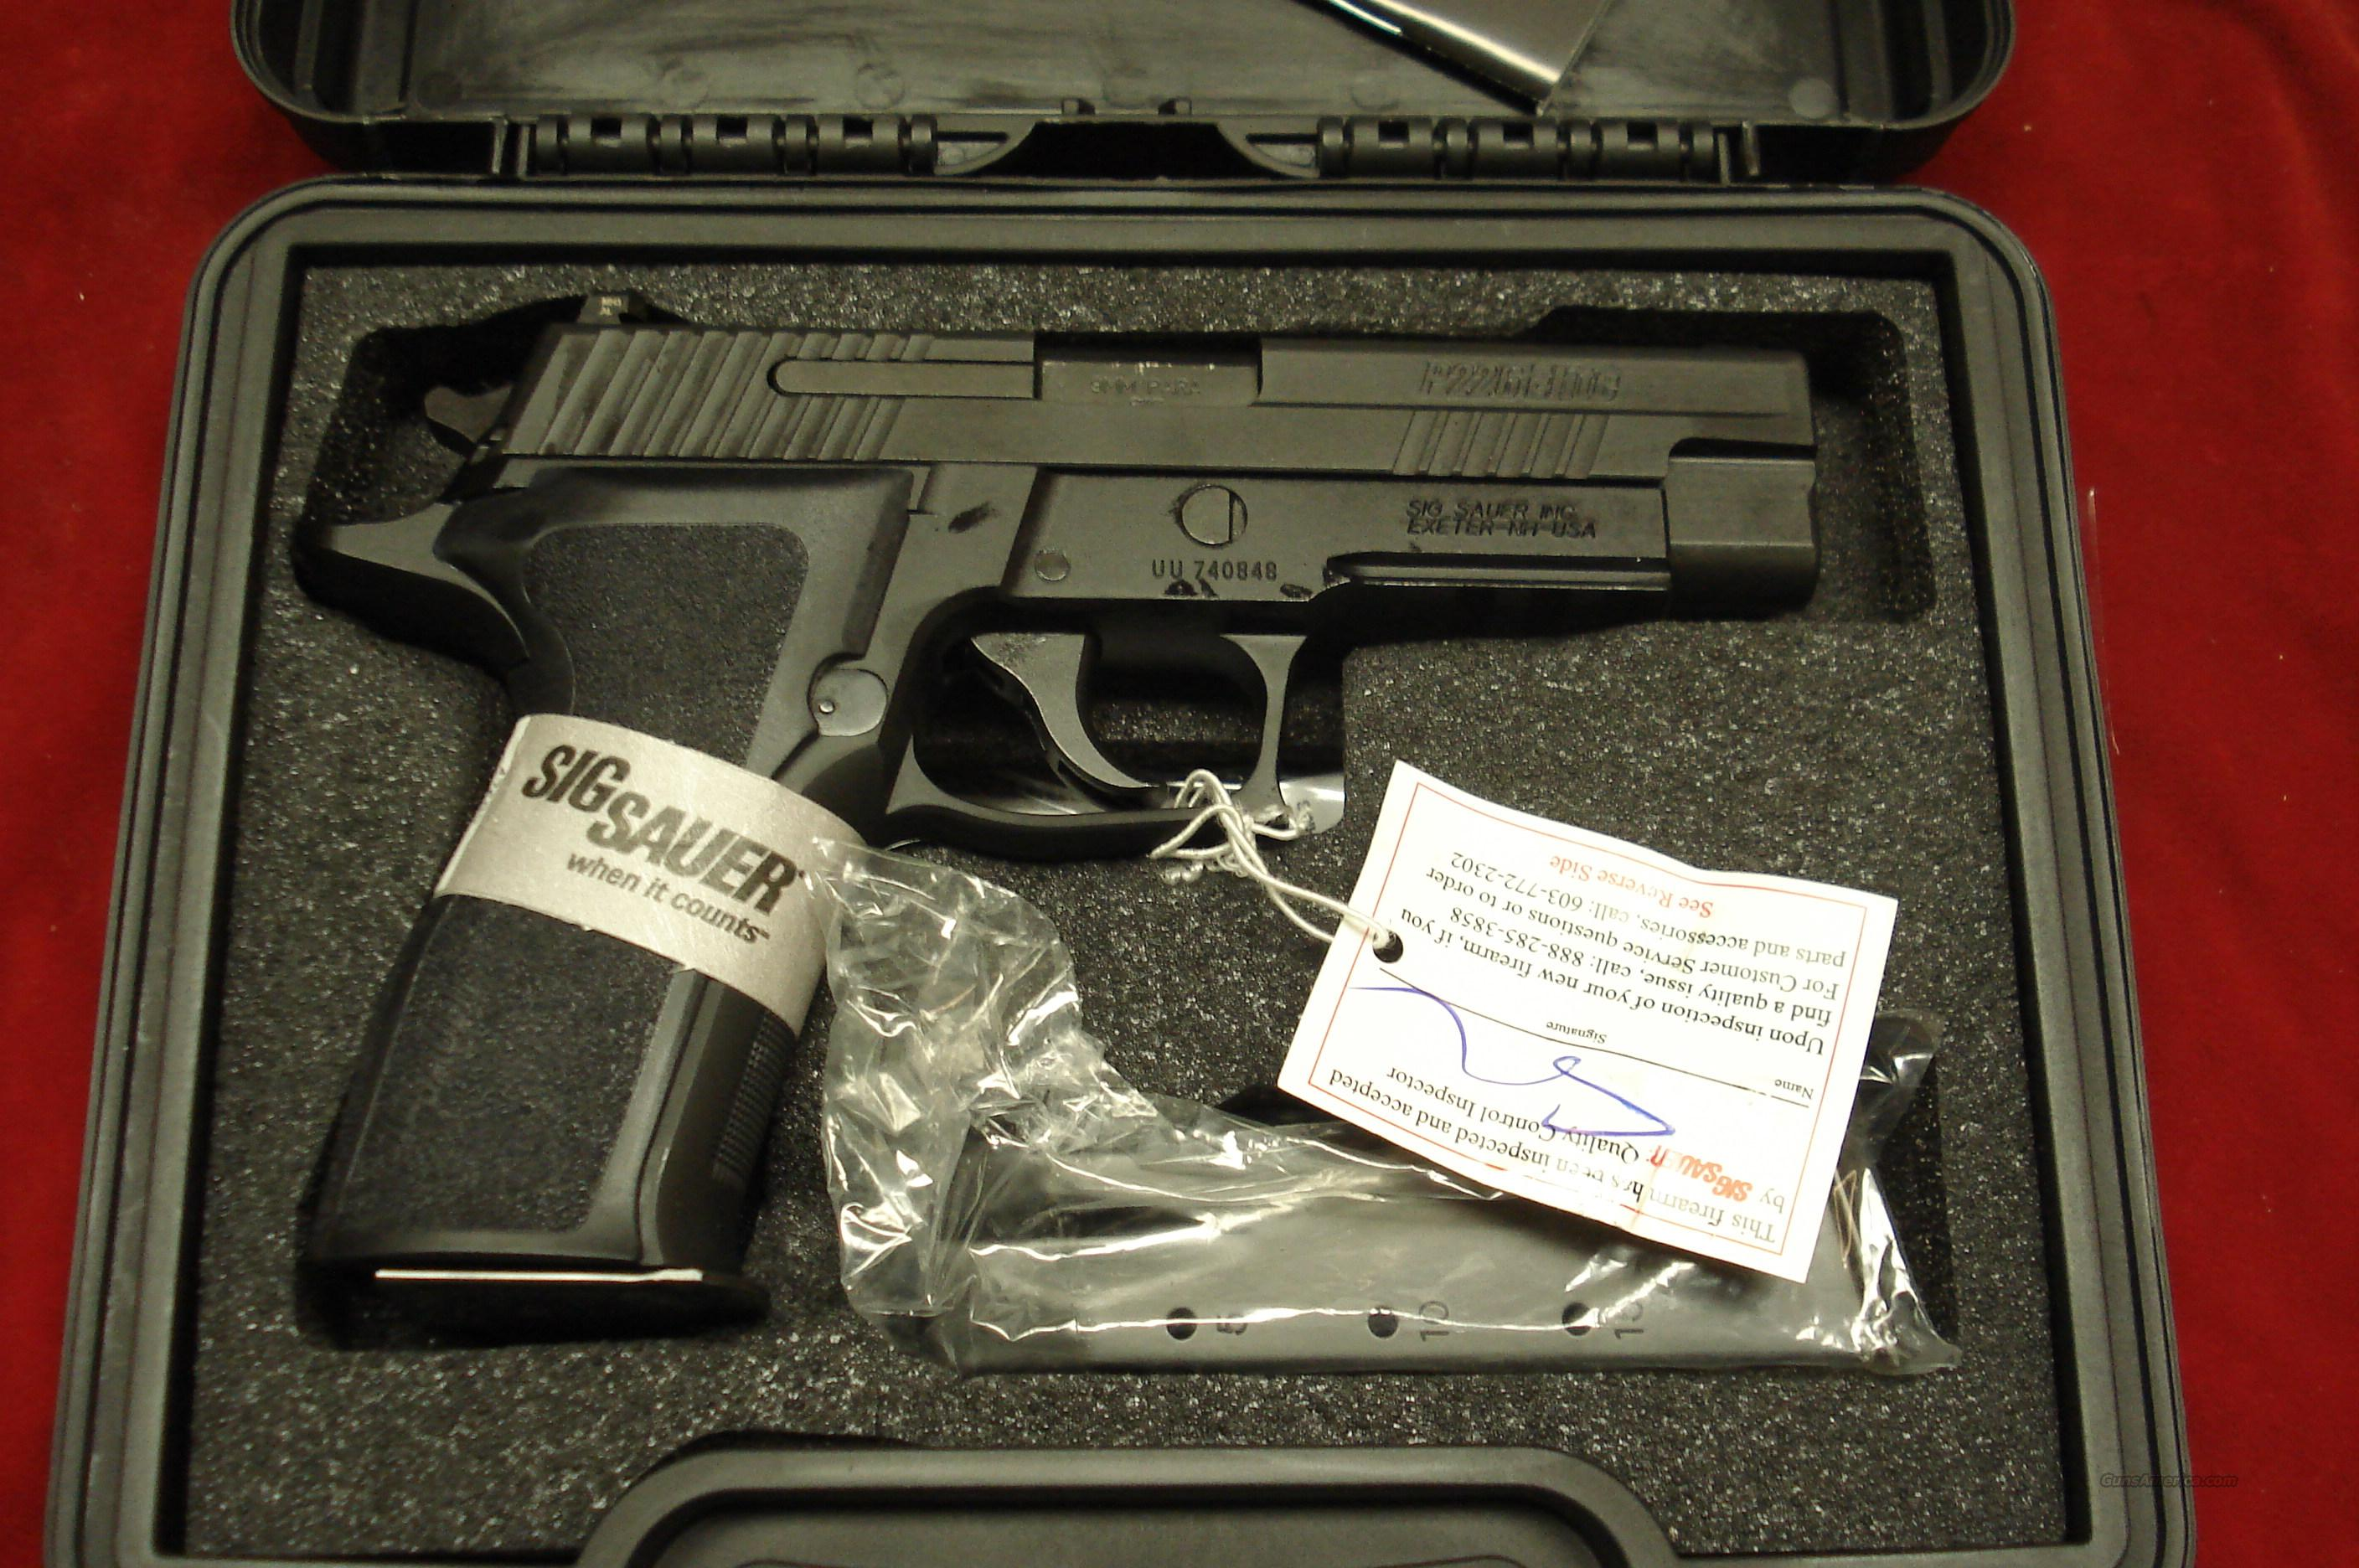 SIG SAUER P226 ENHANCED ELITE 9MM WITH NIGHT SIGHTS NEW  Guns > Pistols > Sig - Sauer/Sigarms Pistols > P226